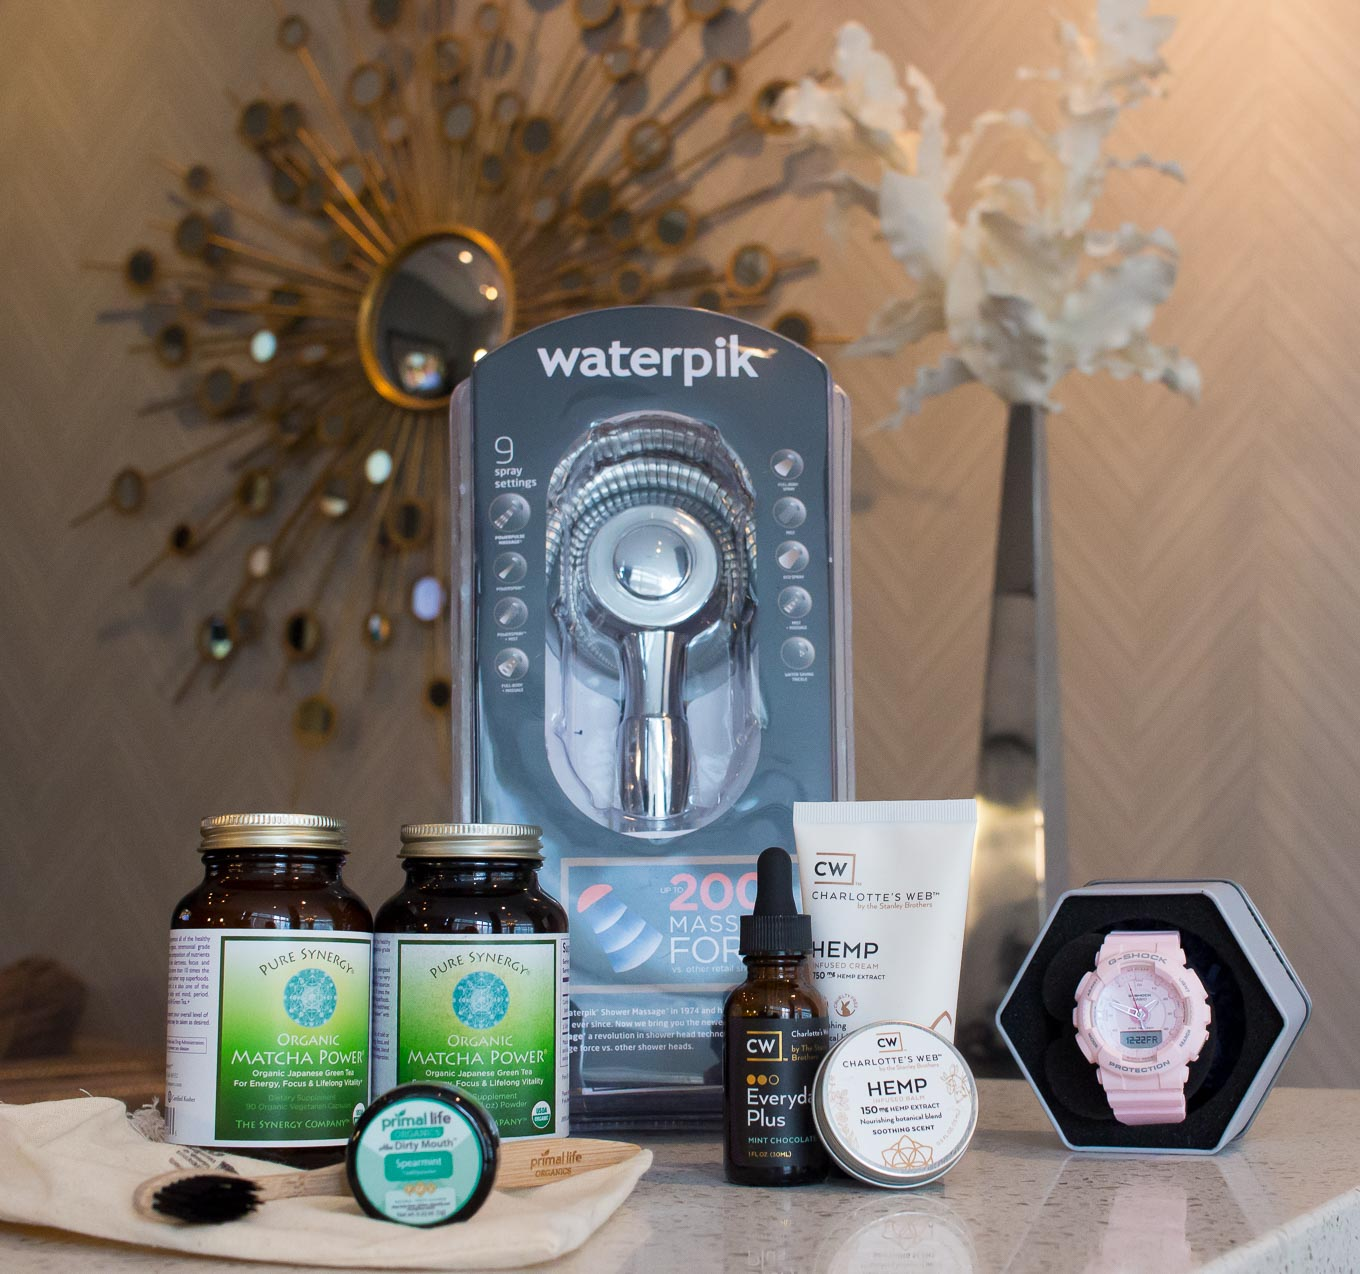 Lifestyle blogger Roxanne of Glass of Glam's review of the Lean Clean Green 2018 Box